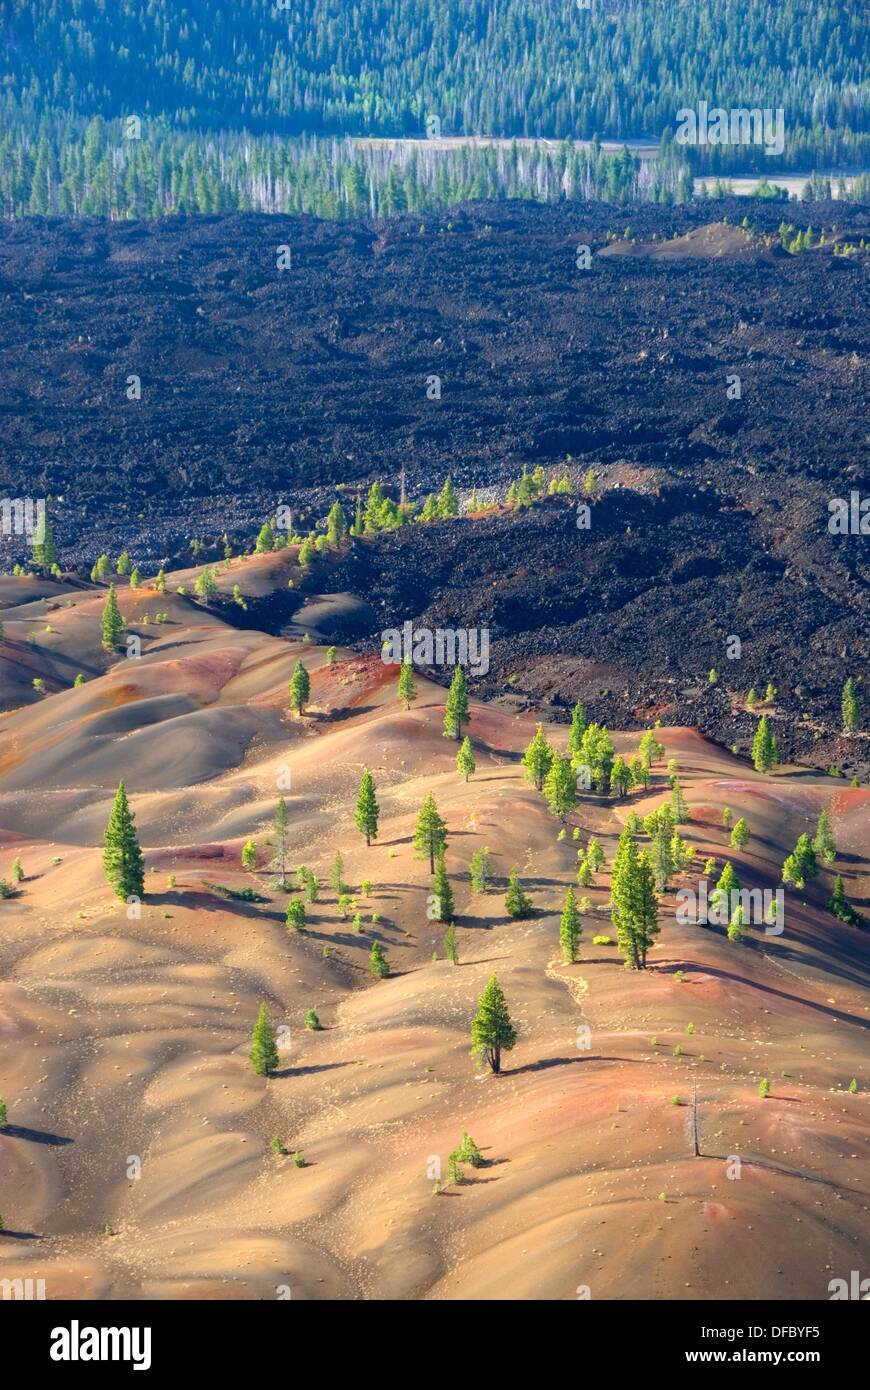 Fantastic Lava Flow from Cinder Cone, Lassen Volcanic National Park, California, USA - Stock Image